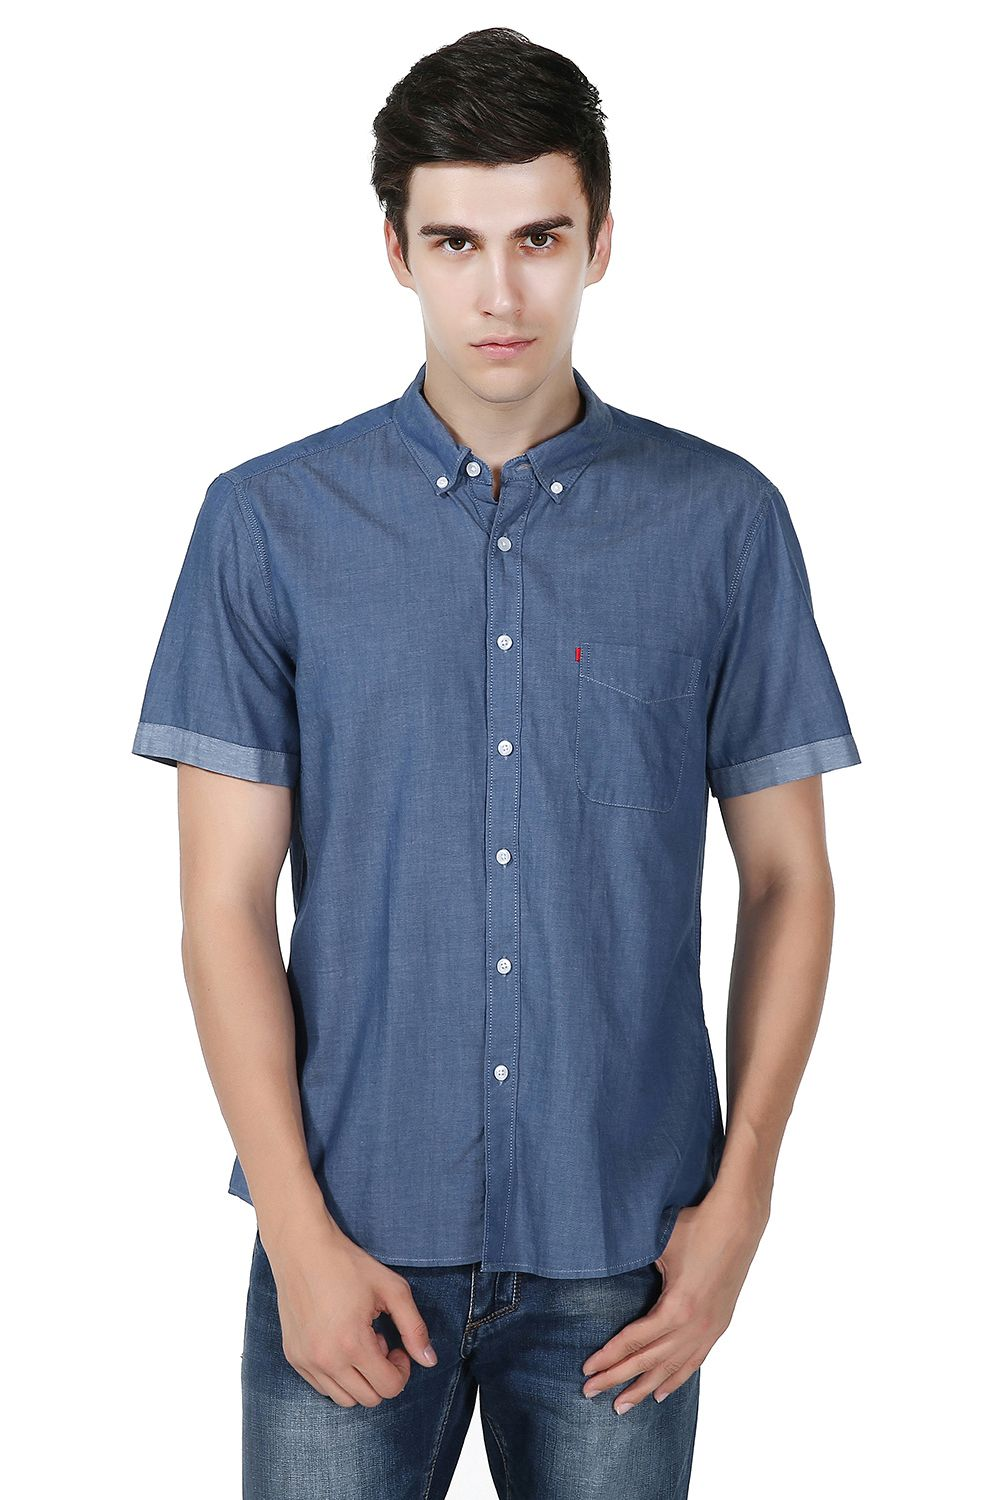 GenericMen Casual Short Sleeve Solid Button-Down Work Shirt